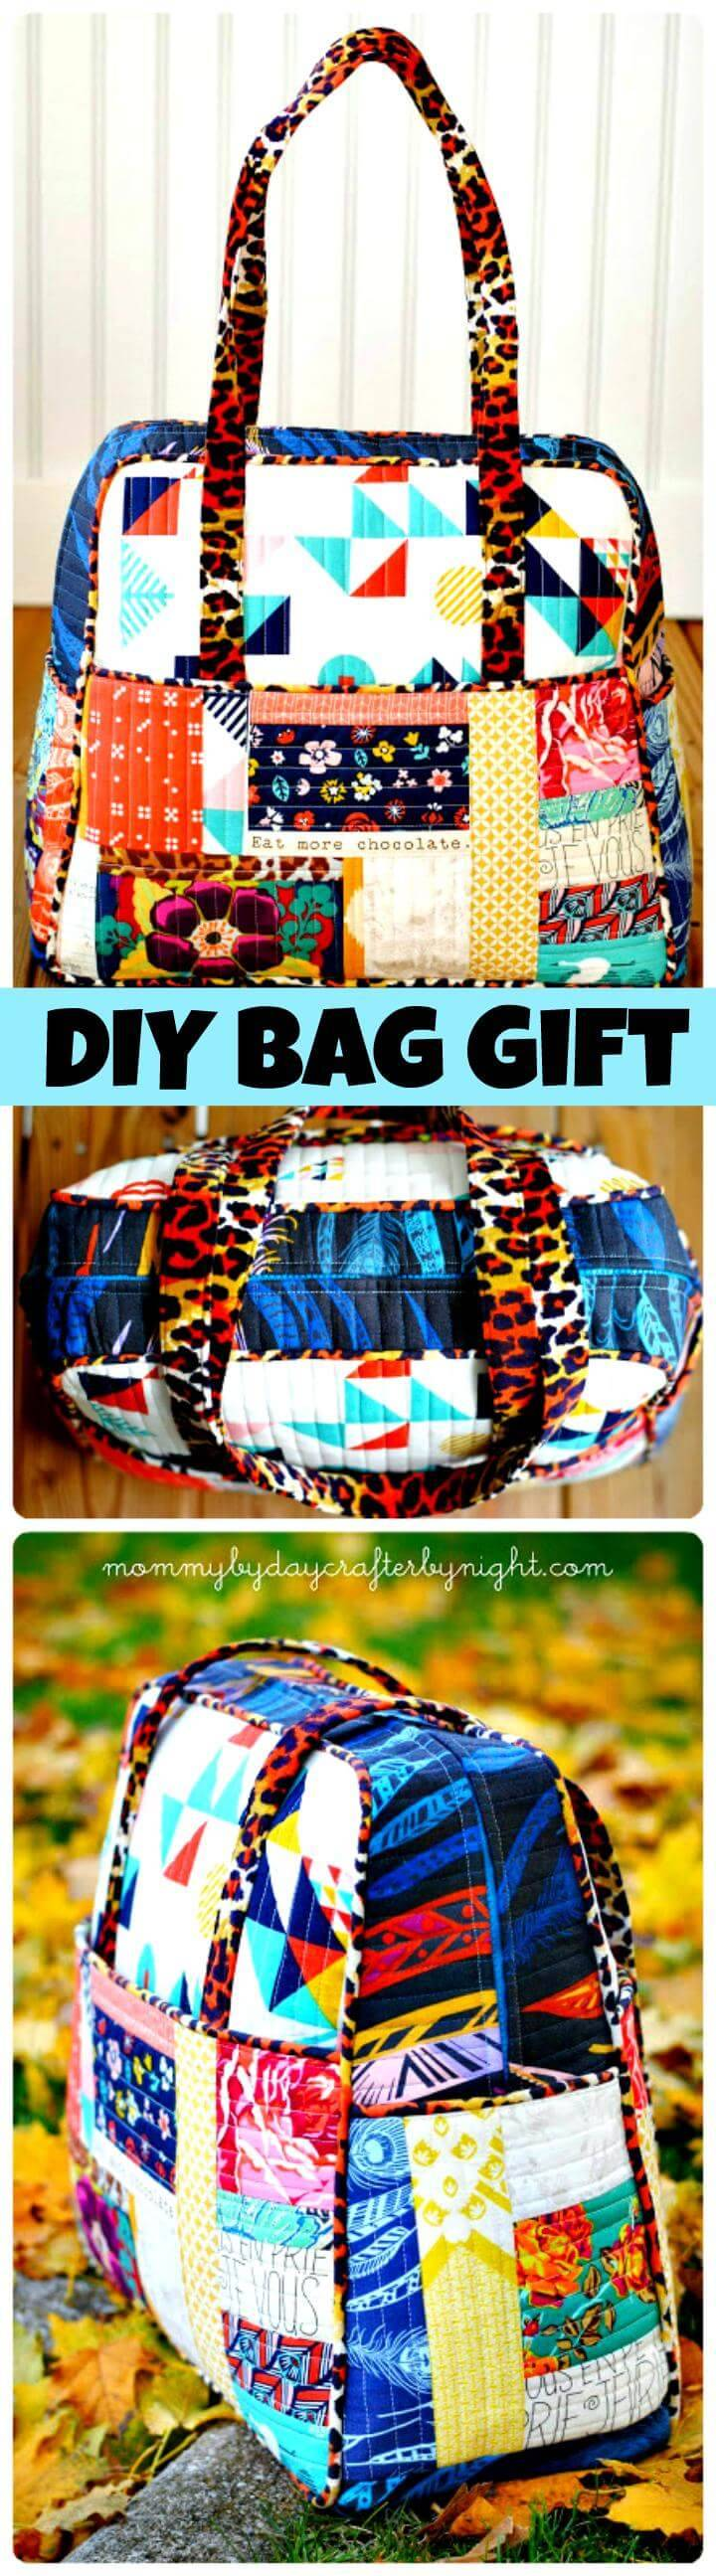 DIY bag Mother's Day gift Tutorial